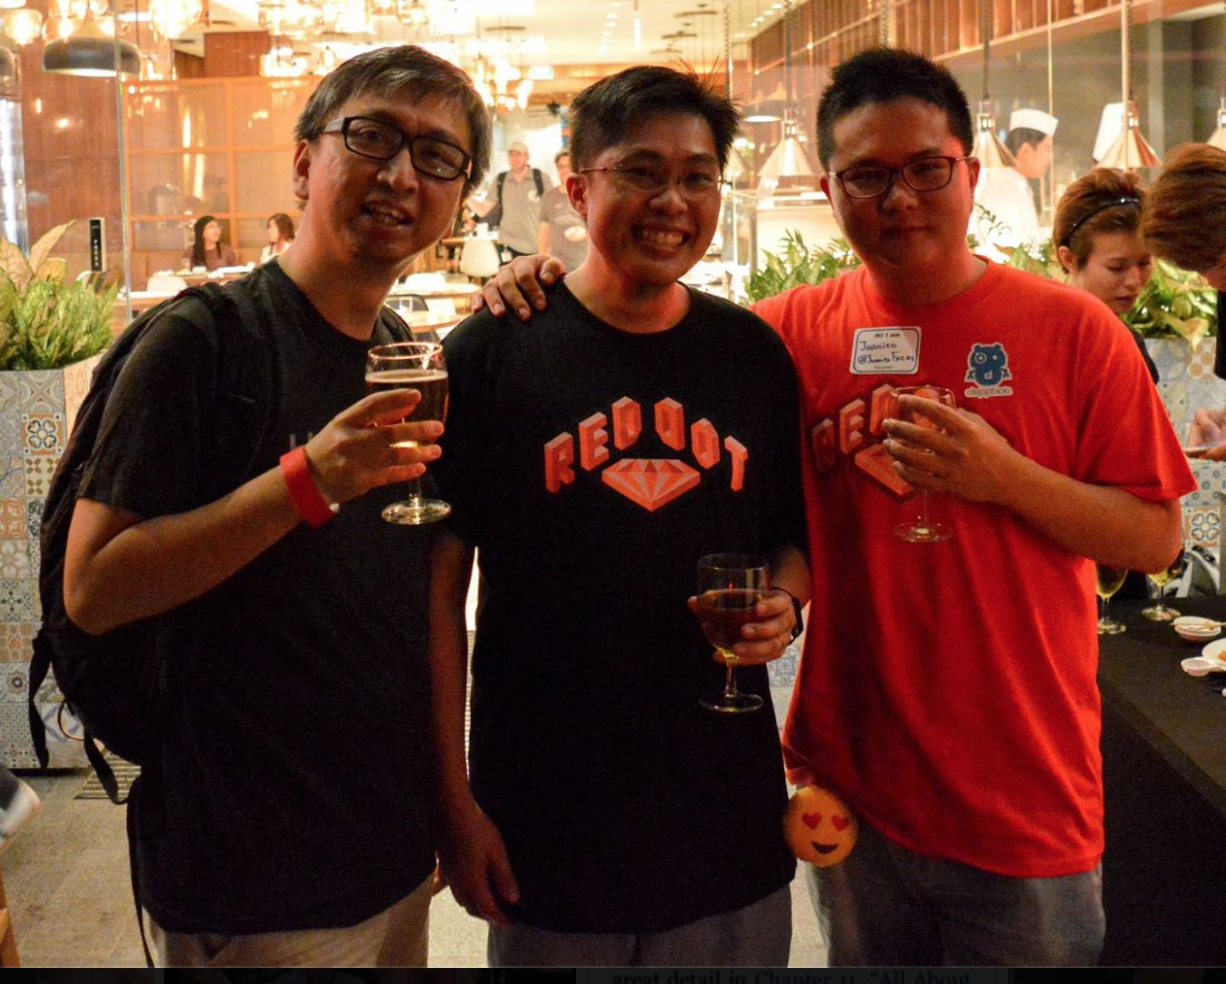 Chonnkeat, Winston, and Juanito Fatas at RedDotRubyConf 2016 after party